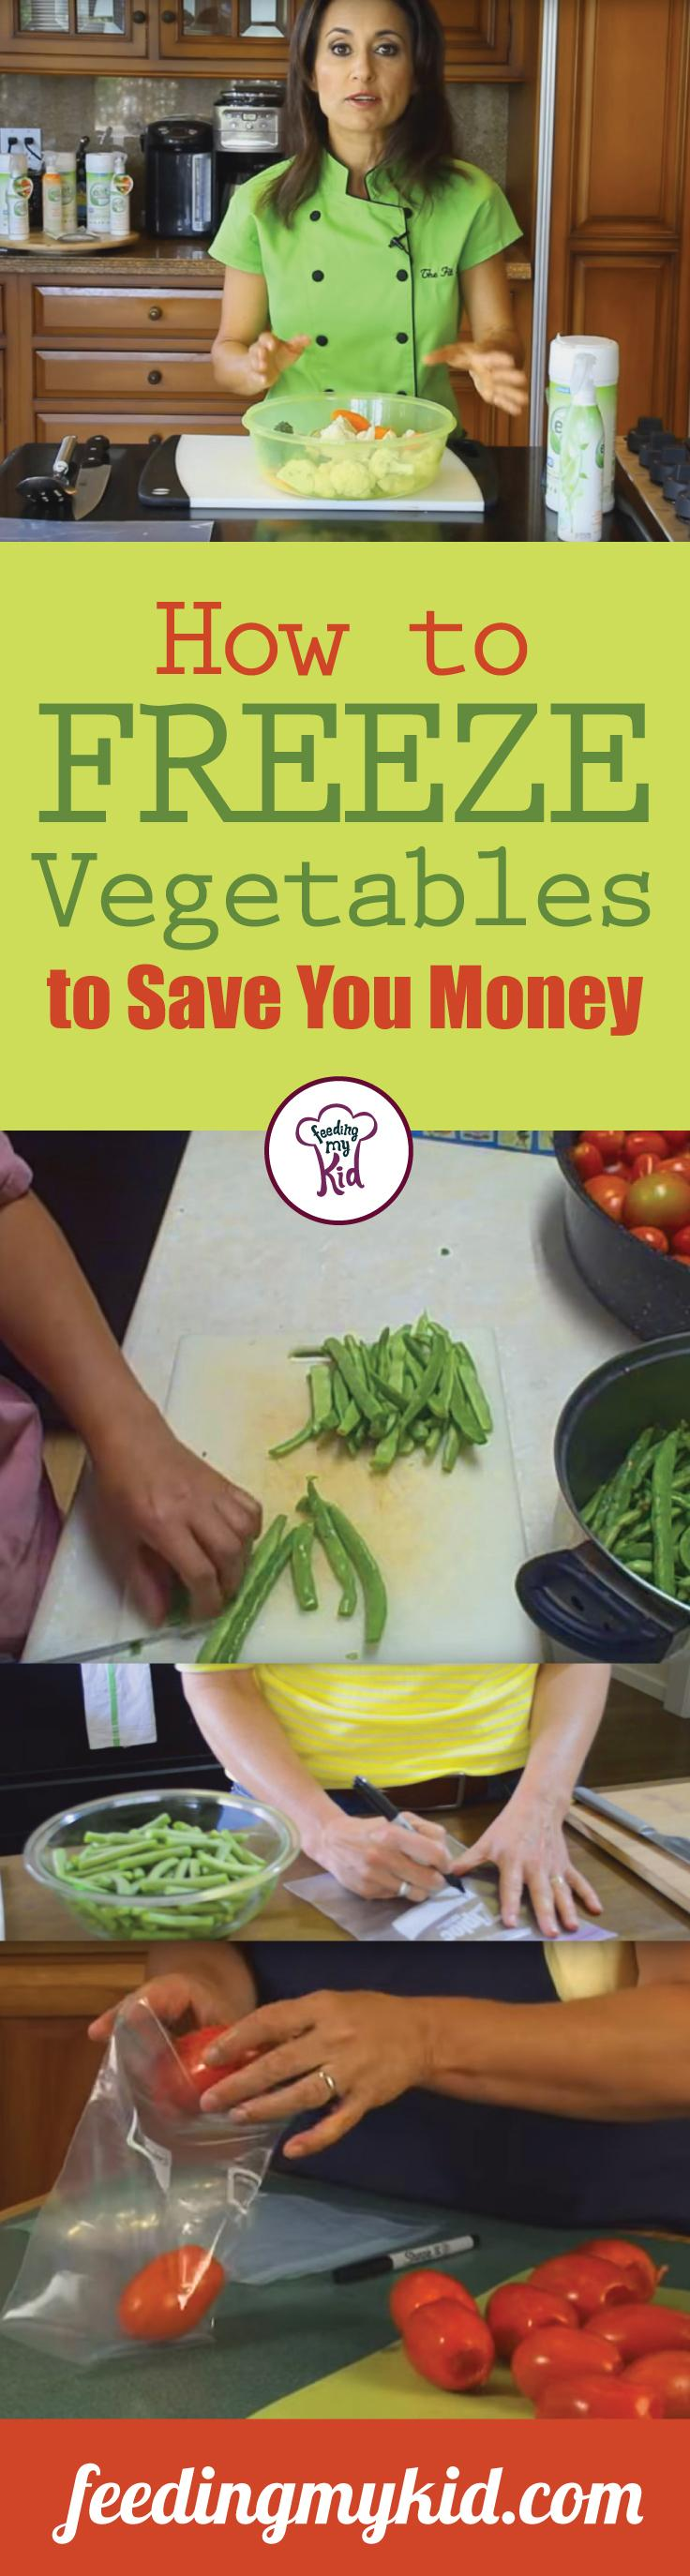 How to Freeze Vegetables to Save Money - Vegetables are especially easy to freeze. Check out these videos. These short and informative tutorials will answer all of your questions about how to freeze vegetables! This is a must share! #fmk #freeze #savemoney